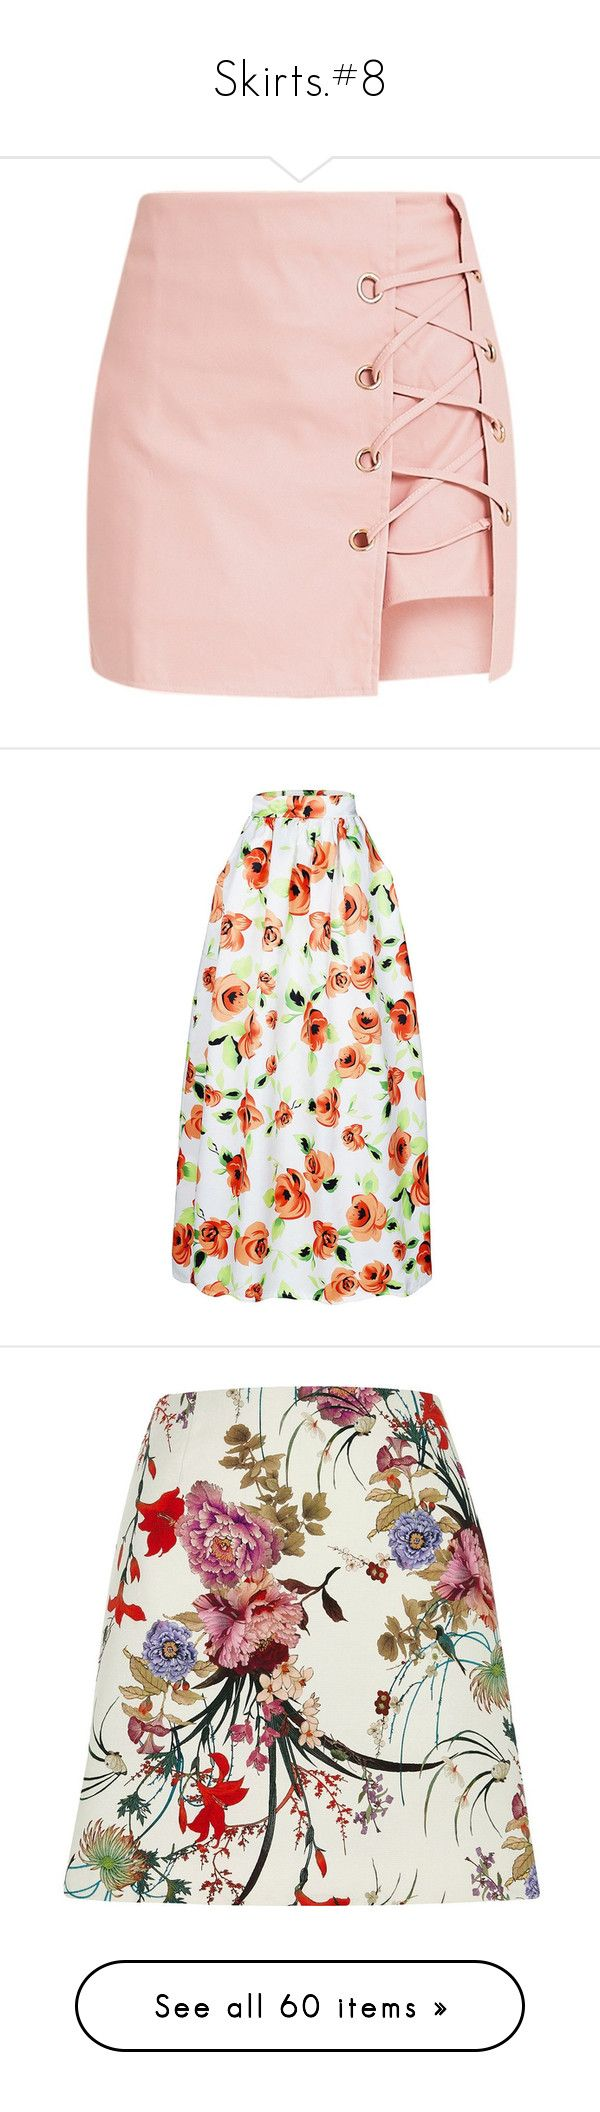 """Skirts.#8"" by julidrops ❤ liked on Polyvore featuring pink skort, golf skirts, skirts, rosegal, high waisted floral skirt, white high waisted skirt, high waisted long skirt, high waisted floral maxi skirt, white maxi skirt and mini skirts"